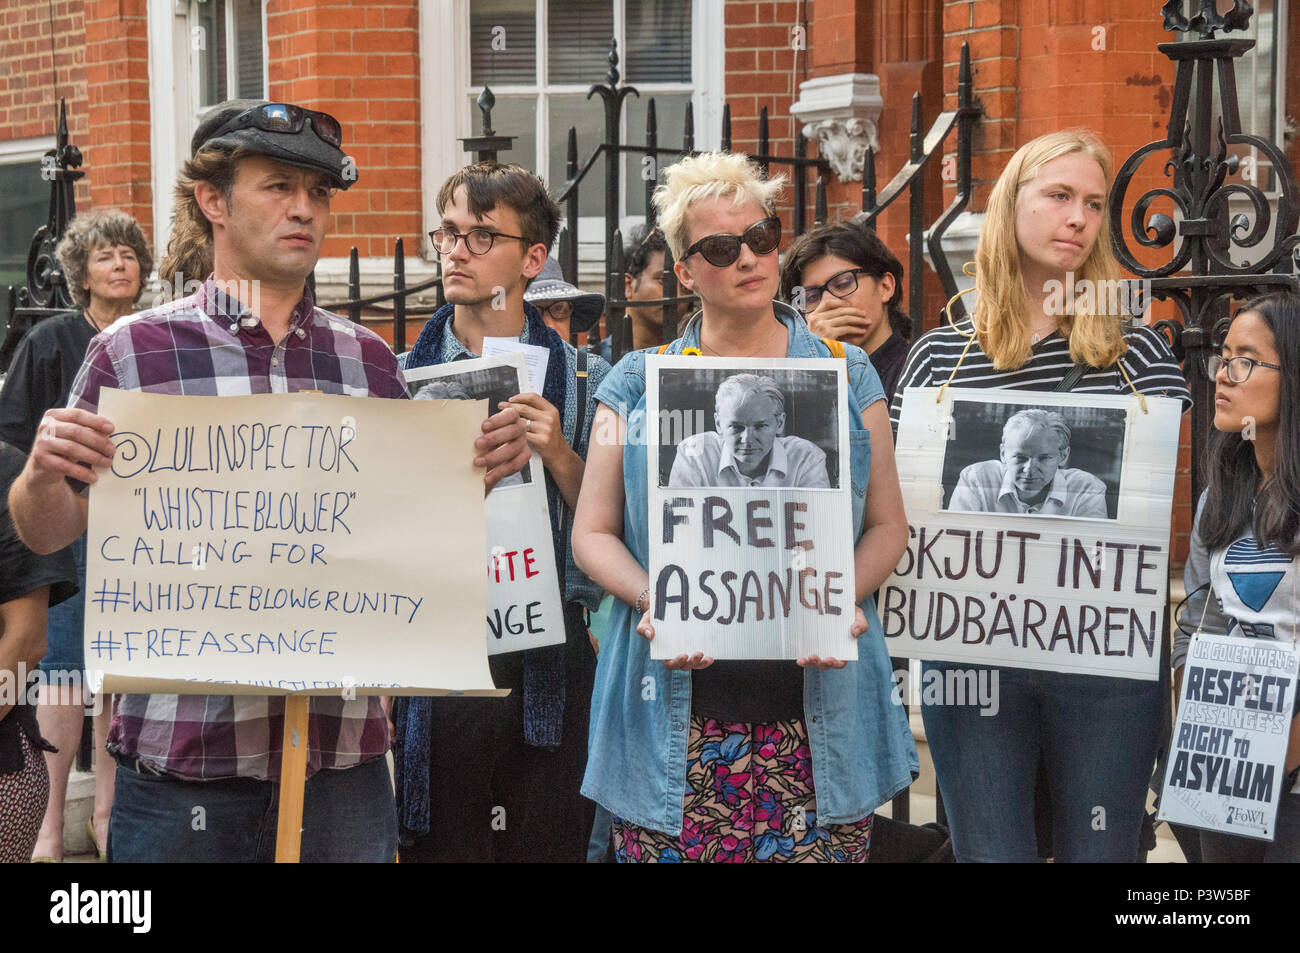 London, UK. 19th June 2018. People at the rally outside the Ecuadorian Embassy in London calling for Julian Assange to be allowed safe passage to the place of his choice to mark six years since he was given asylum there. They called for the UK authorities to allow him to leave the embassy and go to the country of his choice without being arrested. Credit: Peter Marshall/Alamy Live News - Stock Image